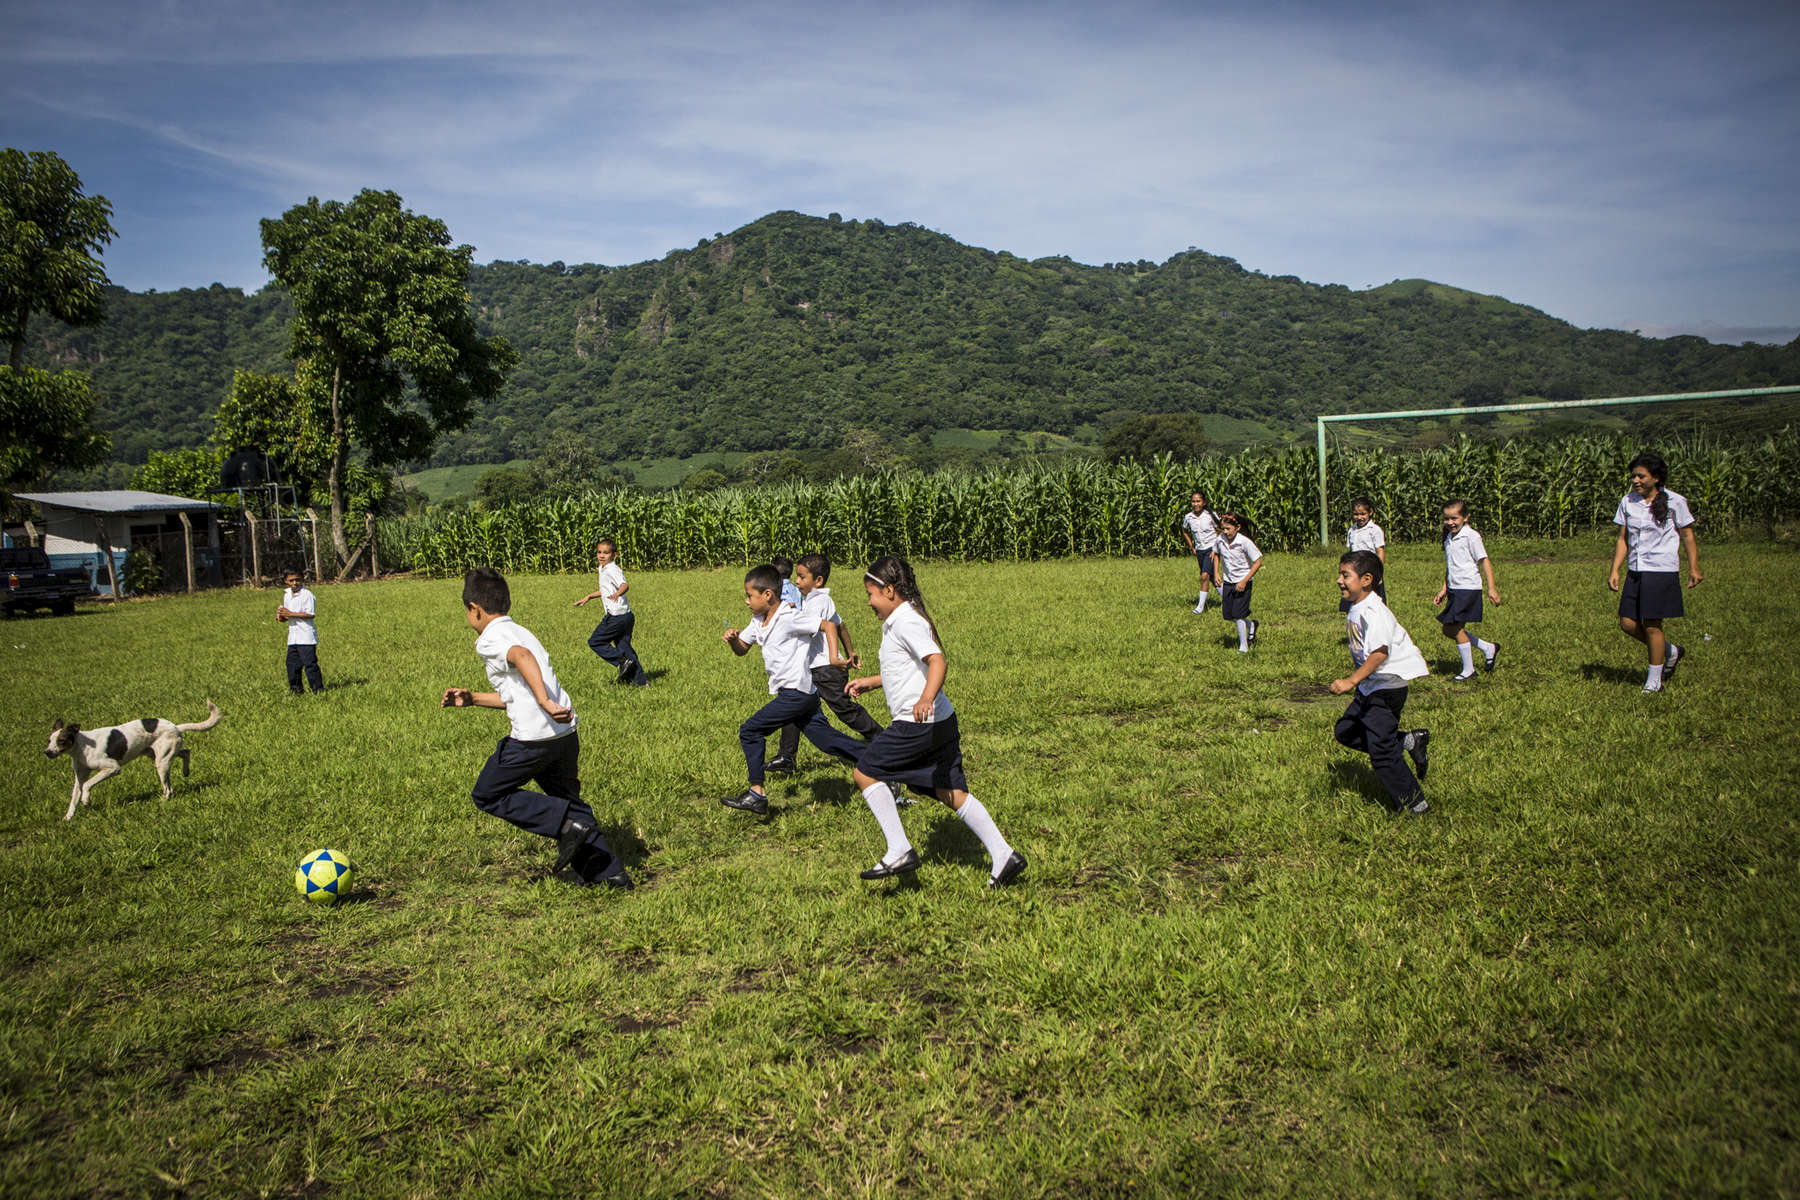 San Julian, El Salvador- Children play on the soccer field outside the Central School in San Julian, El Salvador on Tuesday, June 26, 2018. After many children and faculty grew ill from pesticides sprayed by plane onto the sugar cane field next to the school, the neighboring processing plant was ordered to spray by hand. Sugar cane processing plants must recycle the water they use in order to maintain environmental guidelines but according to local activists, the processing plant in San Julian pumps water directly from the river during the dry/harvesting season affecting the source and impacting their well water. (Jane Hahn)